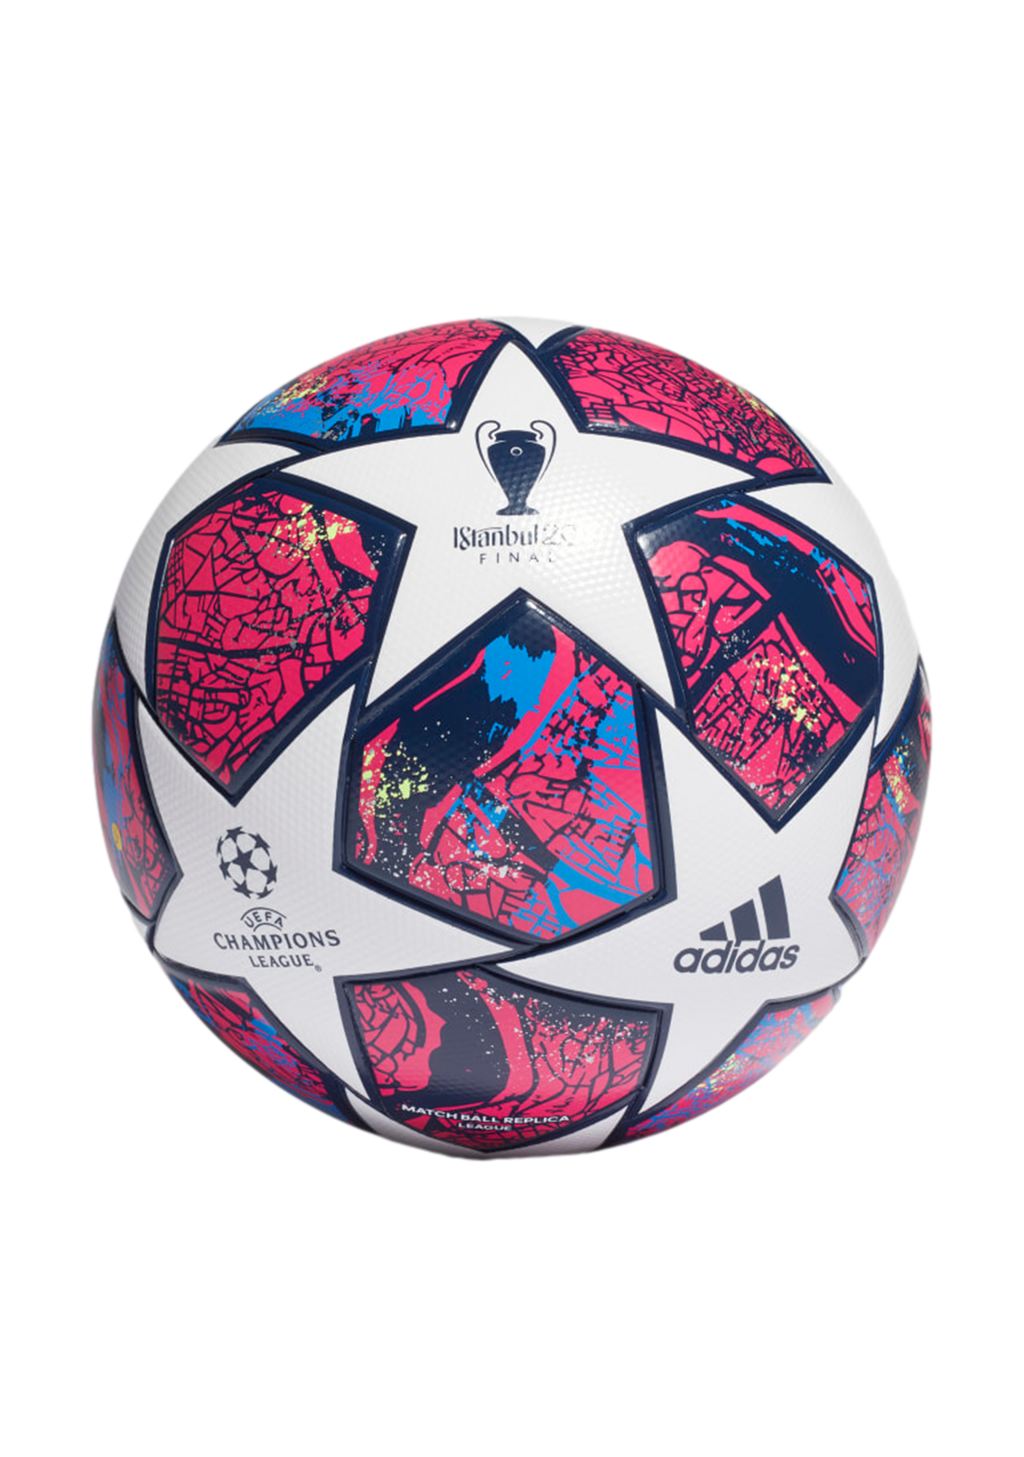 ADIDAS UCL FINALE INSTANBUL LEAGUE BALL <BR> FH7343 B34003